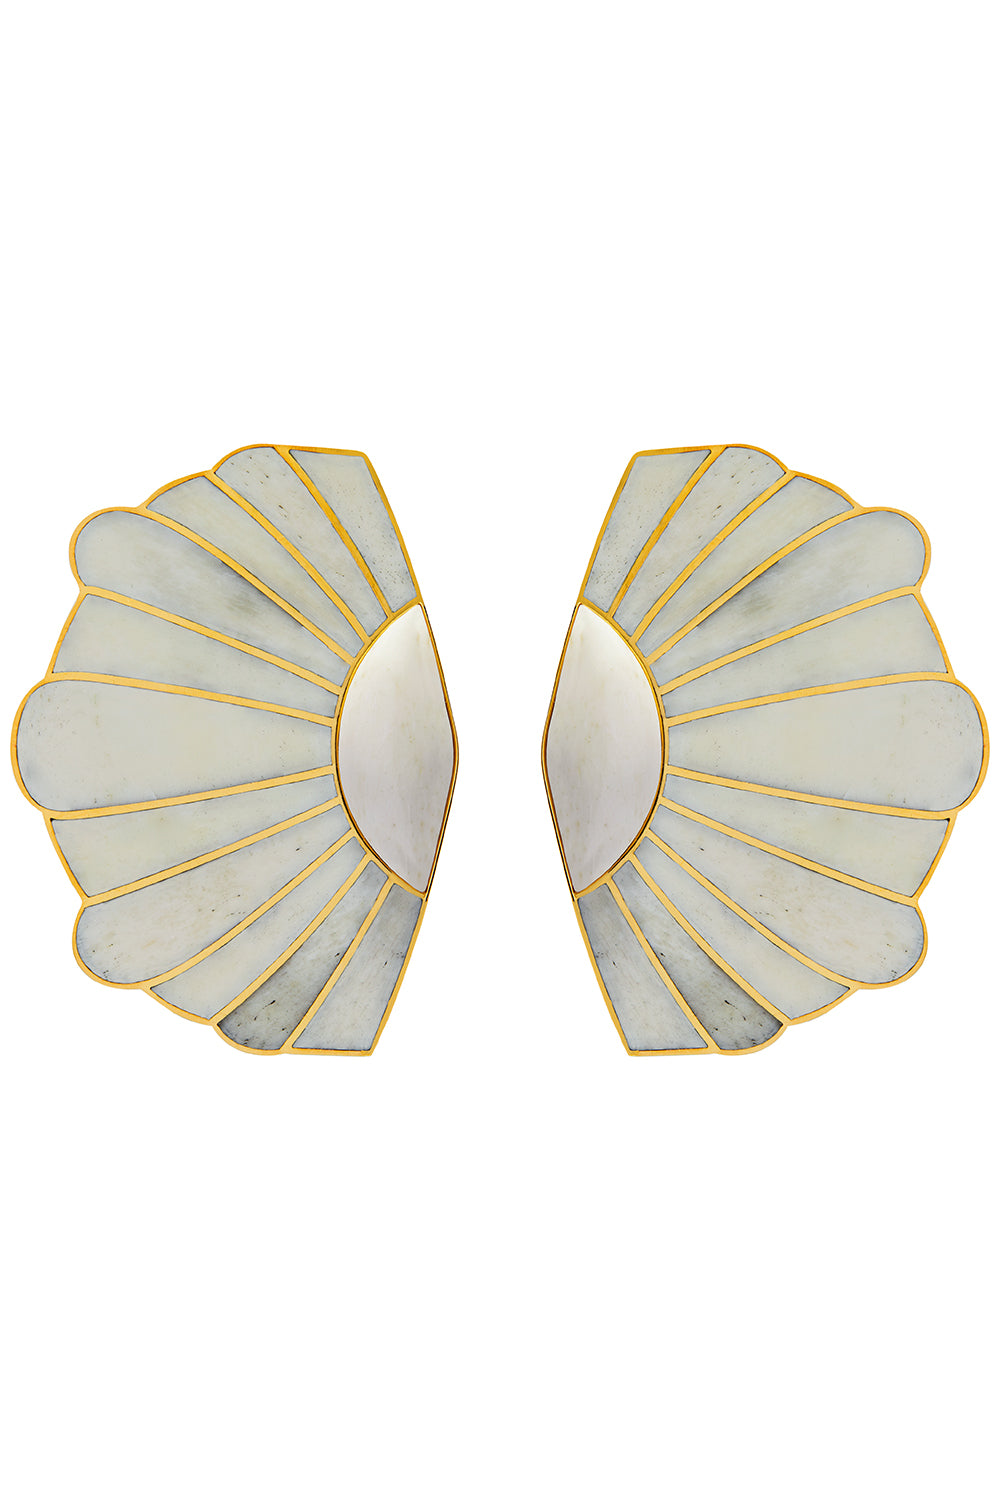 Mullu Earrings in White